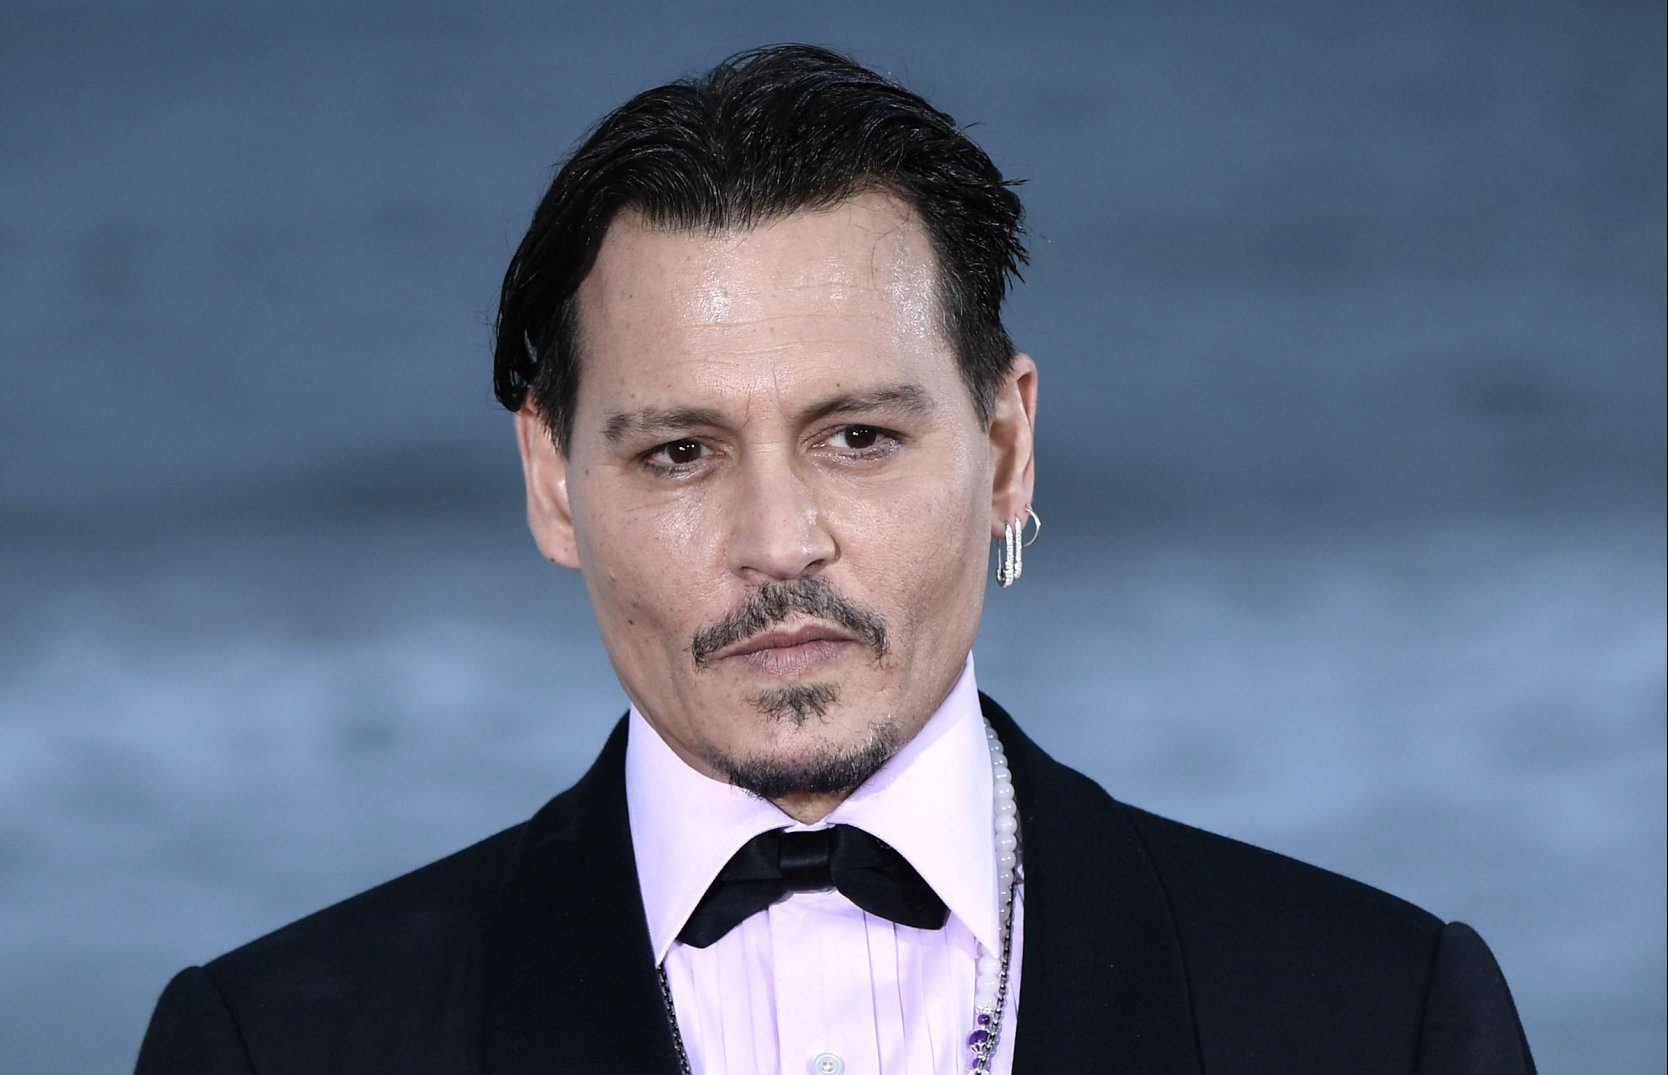 Mandatory Credit: Photo by Imaginechina/REX/Shutterstock (10035451a) Johnny Depp Hainan International Film Festival, Closing Ceremony, Sanya City, China - 16 Dec 2018